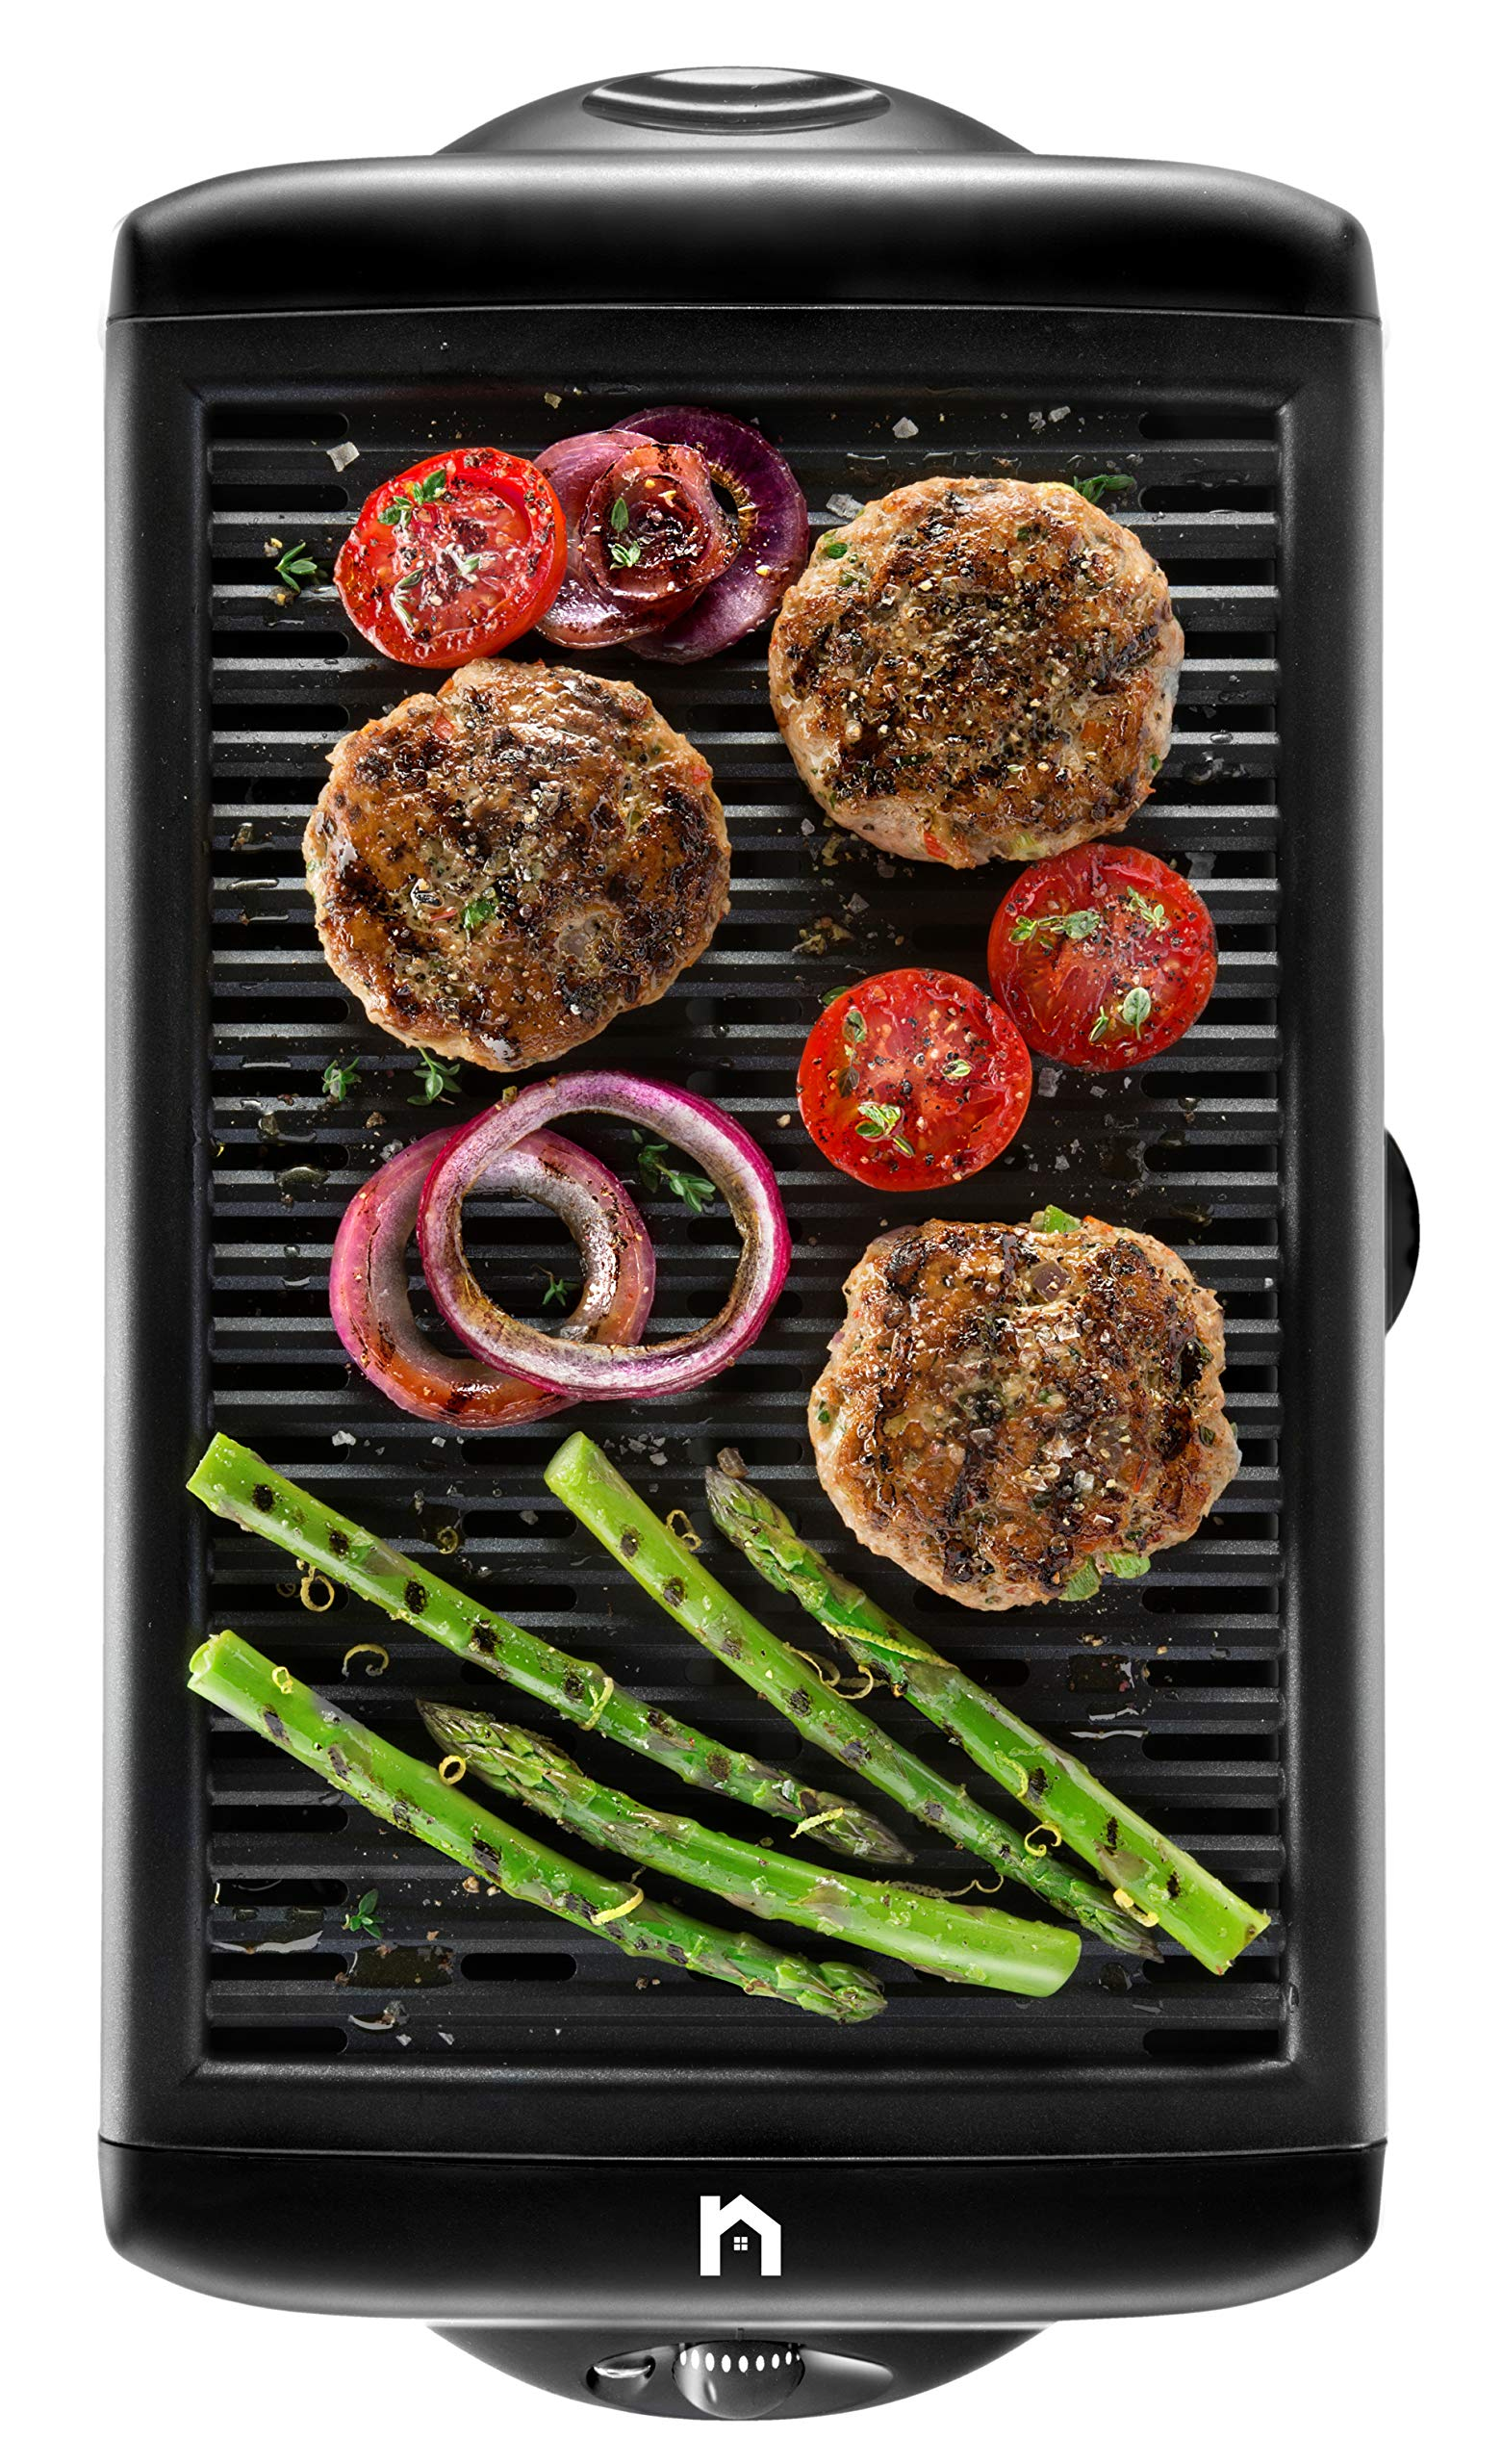 New House Kitchen Electric Smokeless Indoor Grill, Large Non-Stick Cooking Surface, Temperature Control, Dishwasher Safe Removable Drip Tray, Portable Kitchen BBQ-Grill, Black by New House Kitchen